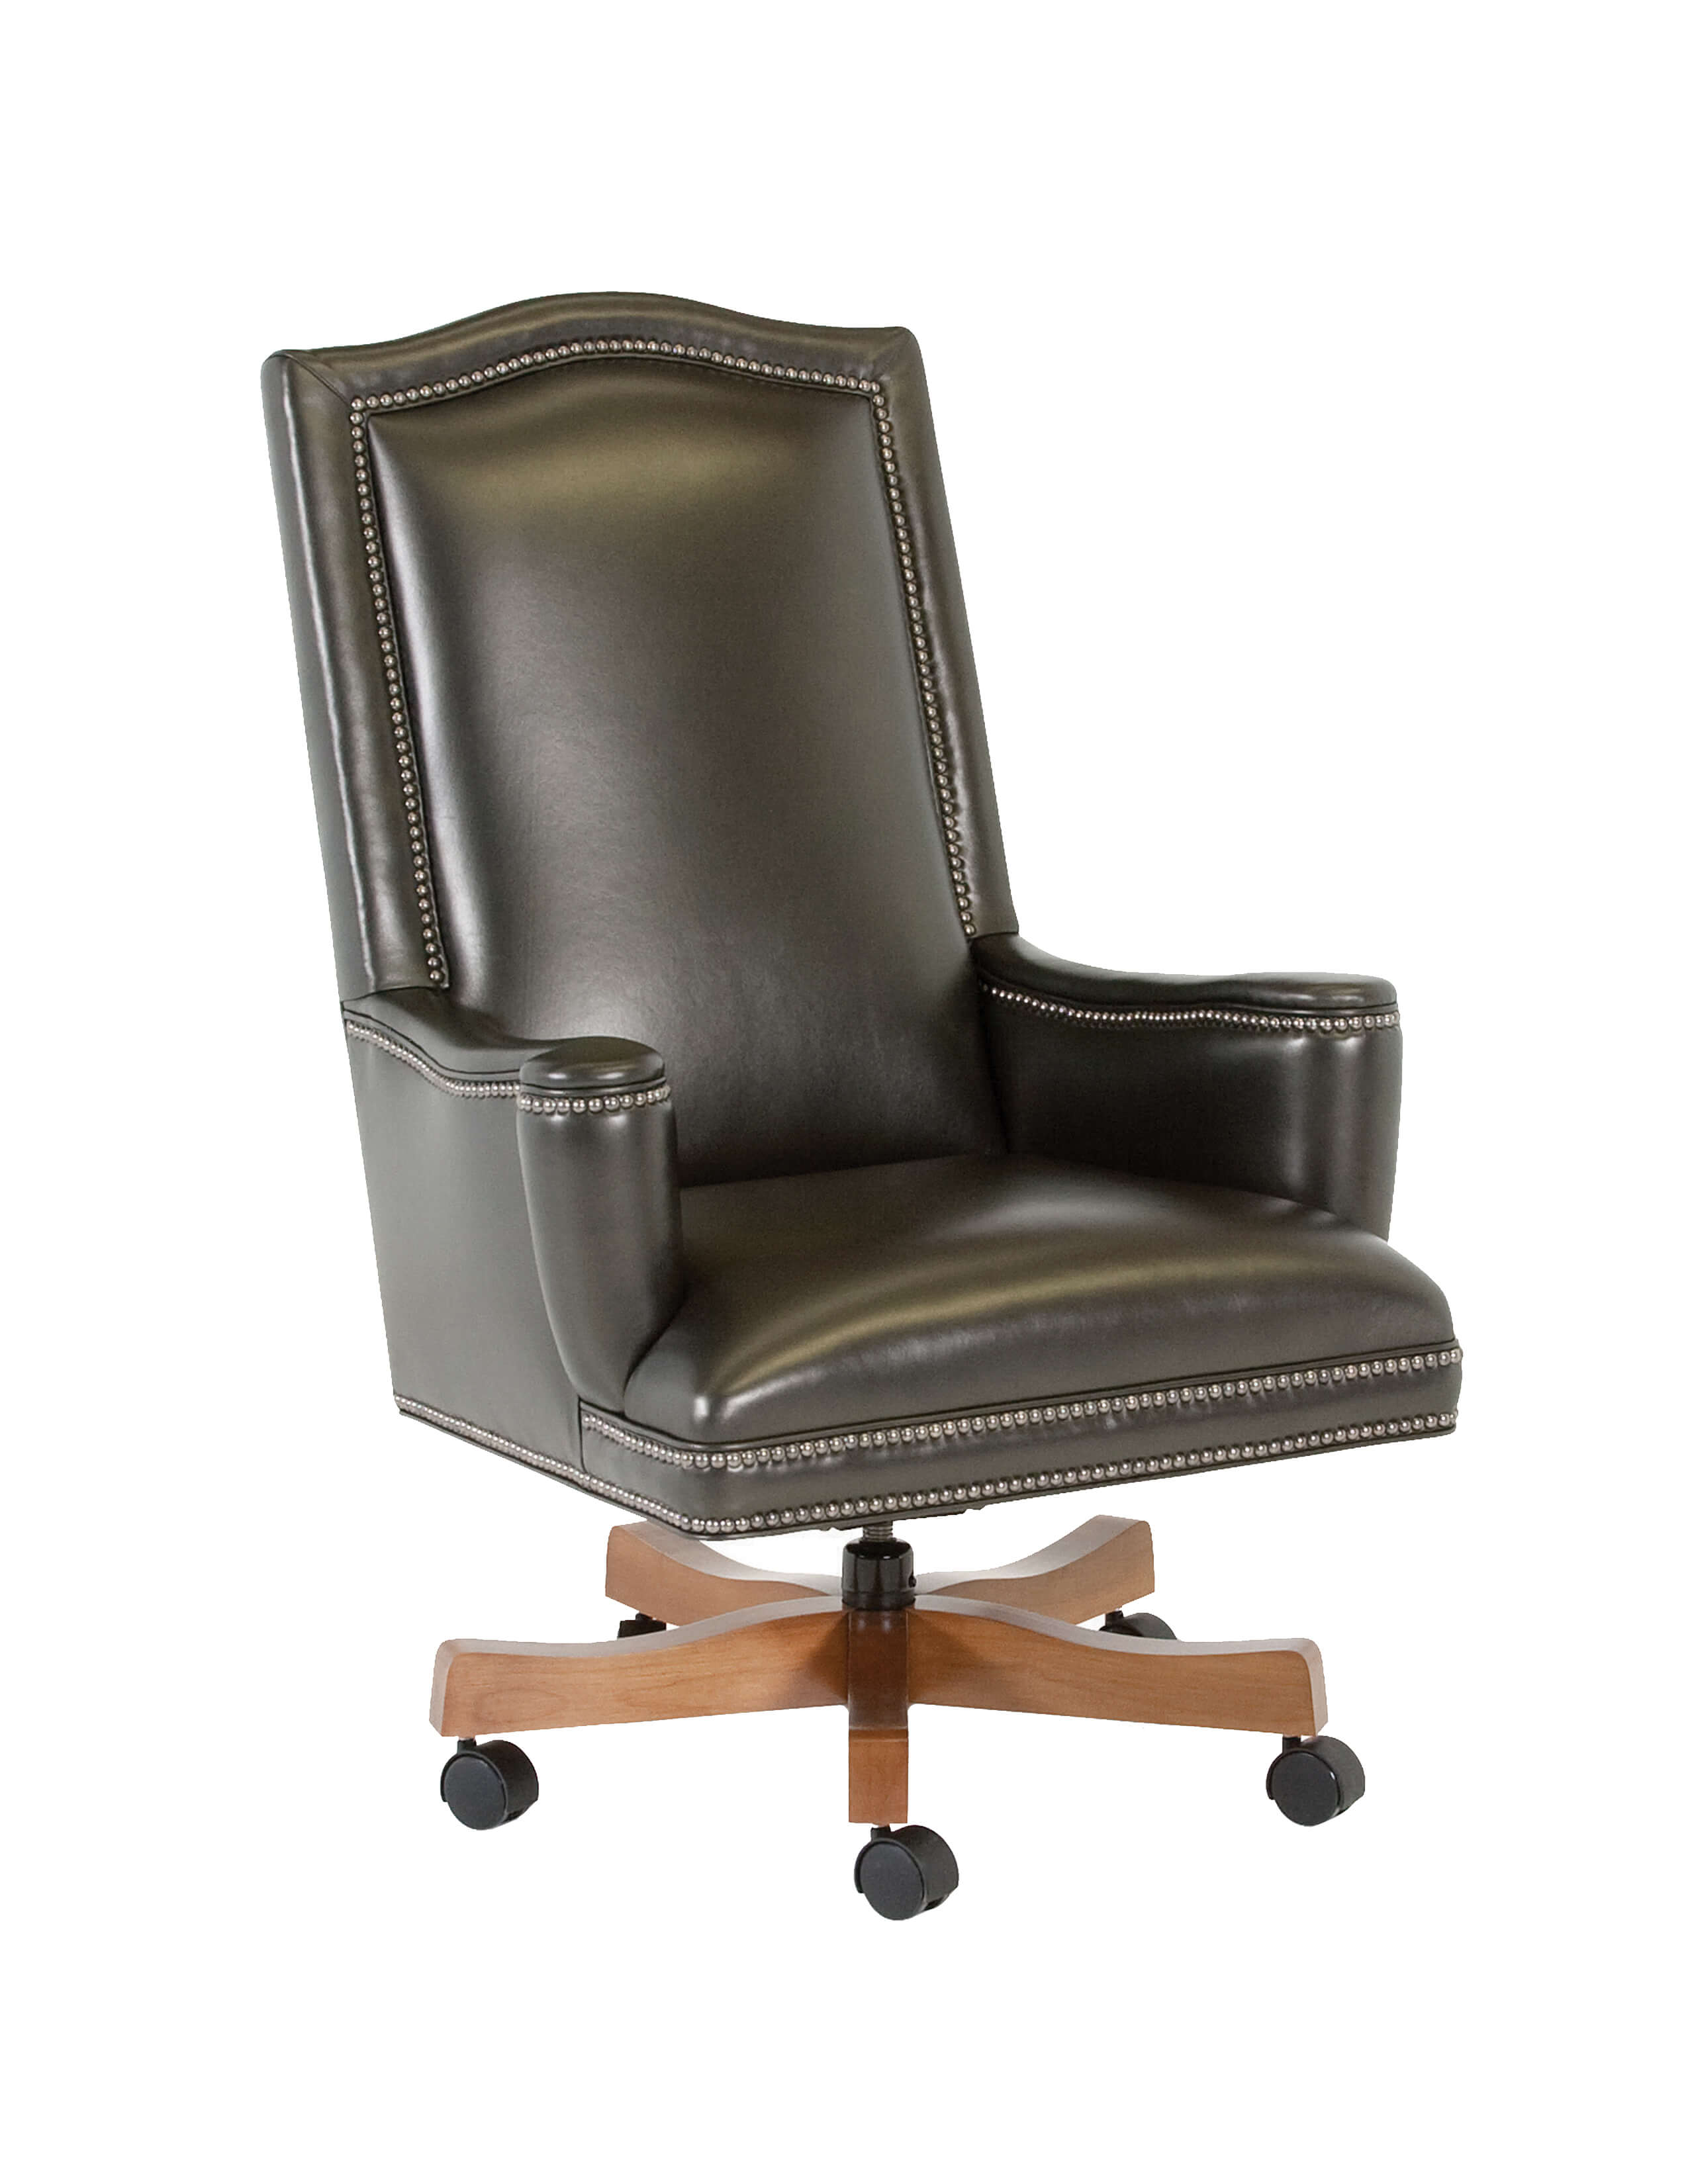 office club chairs air bag chair how to inflate classic leather seating 1042 st addison swivel